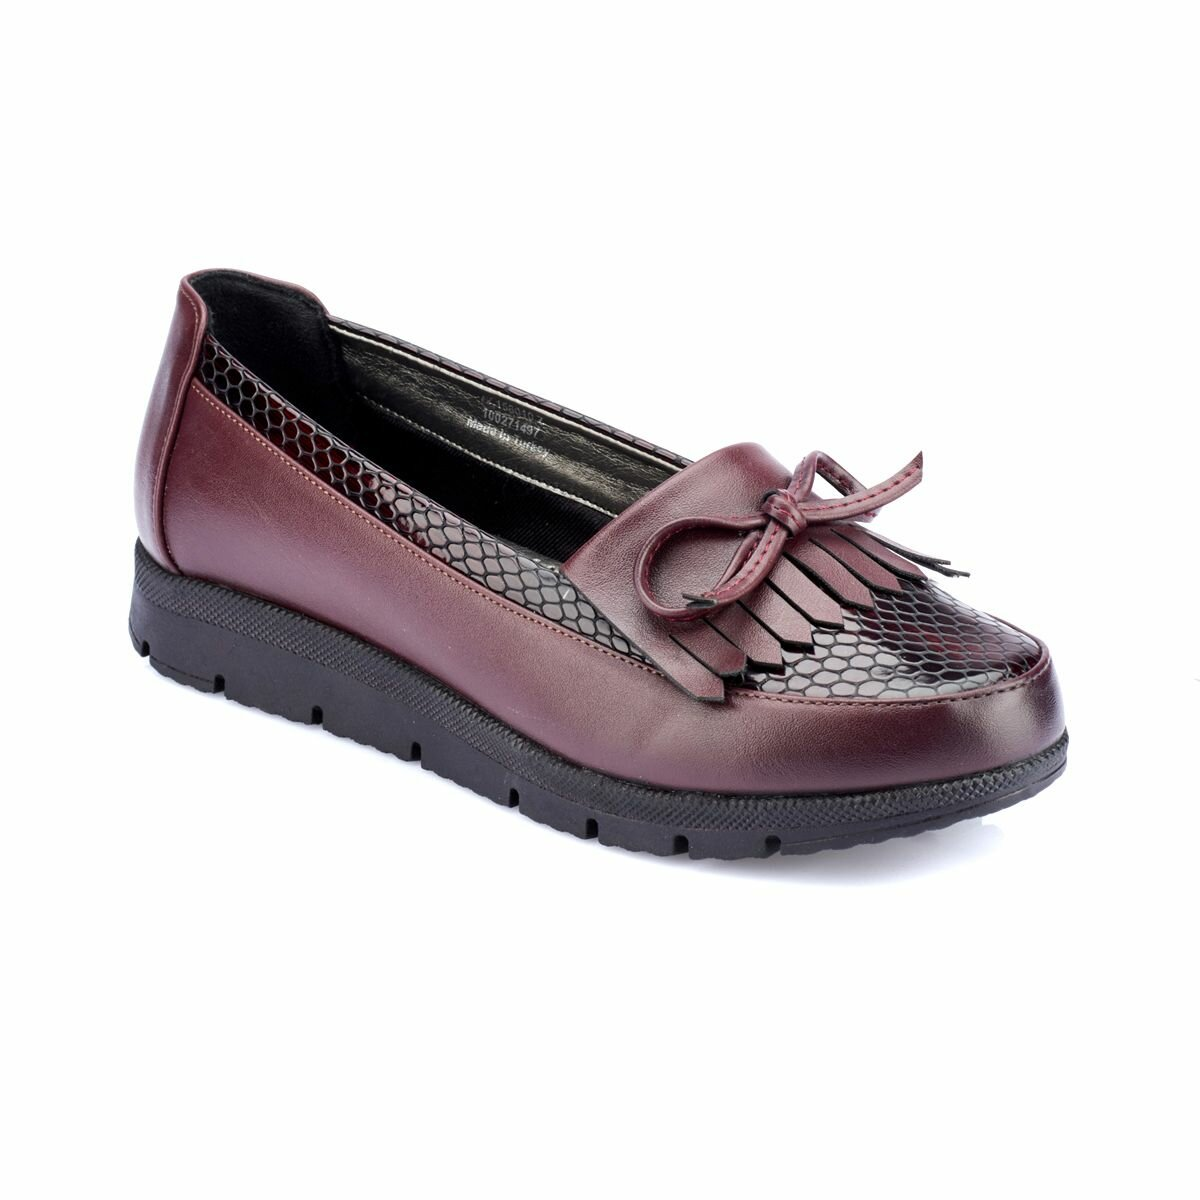 FLO 82.158010.Z Burgundy Women 'S Shoes Polaris